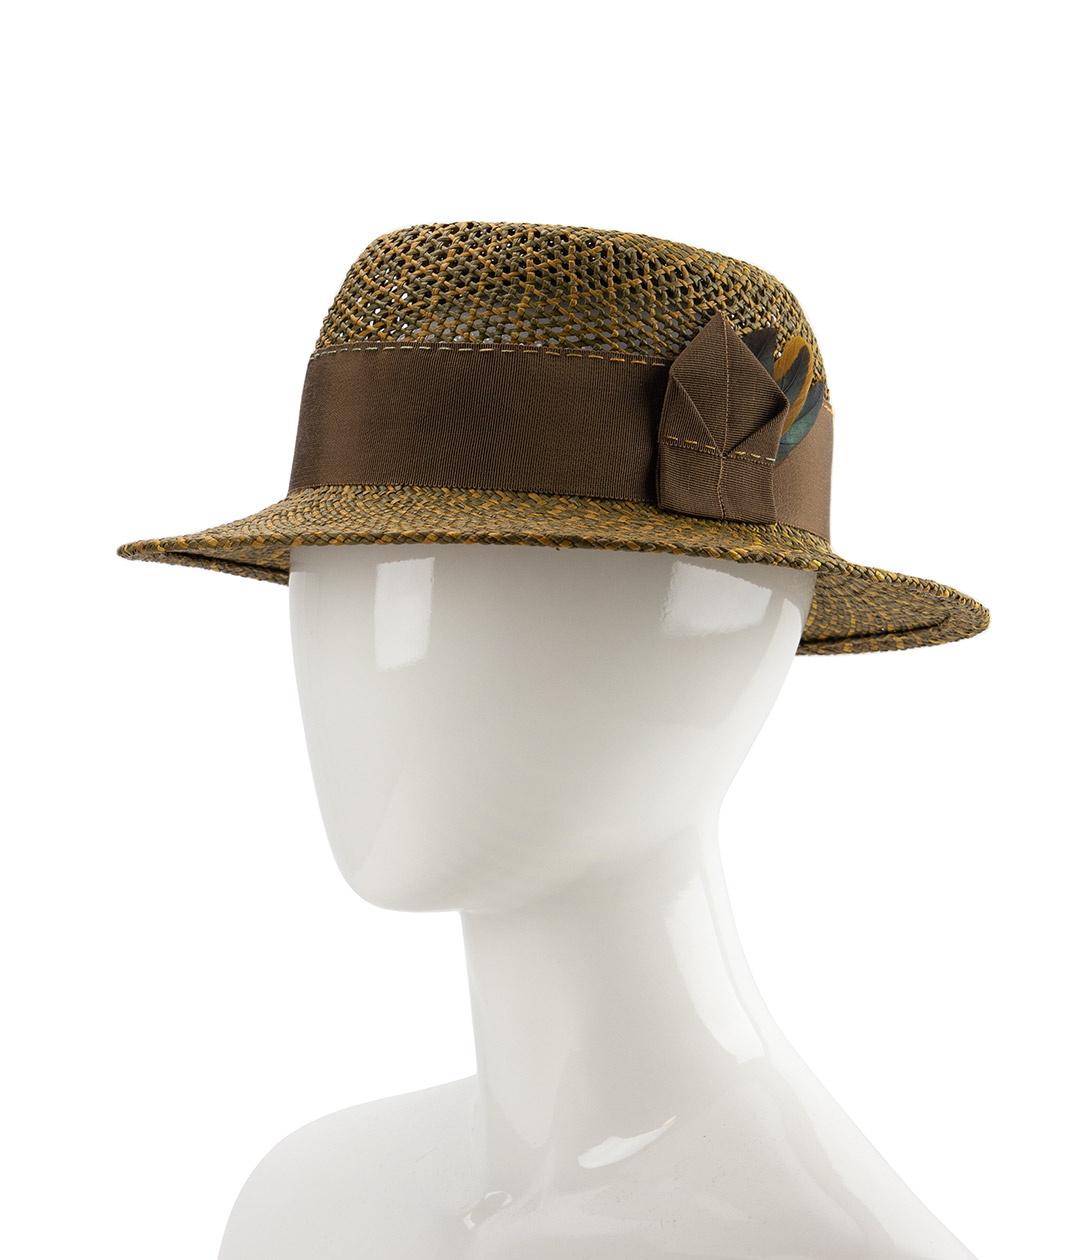 Olive green and mustard Panama straw hat.